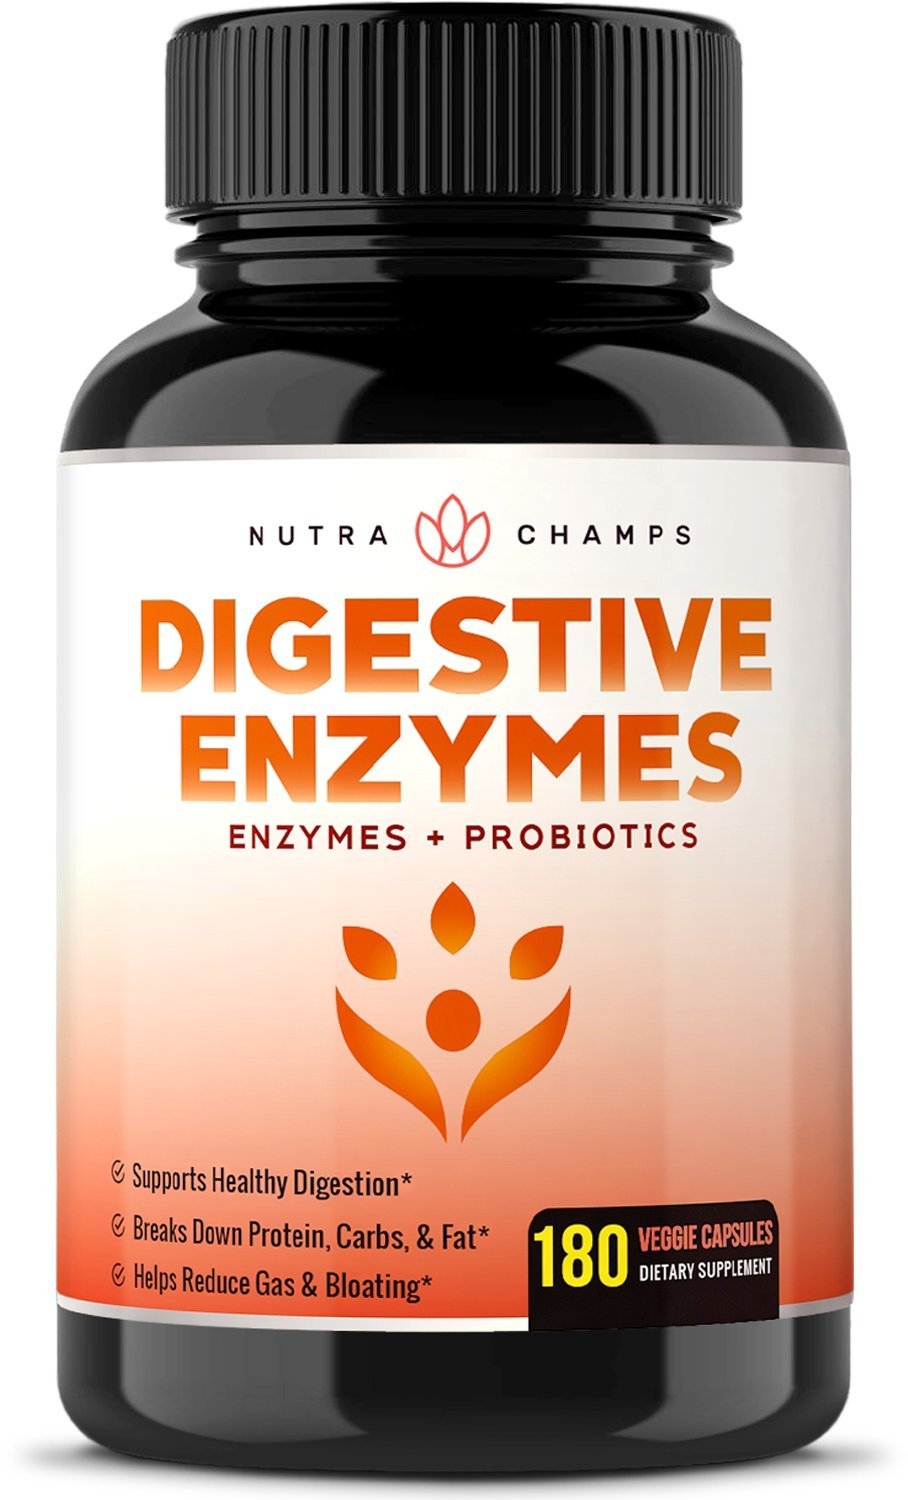 Digestive Enzymes with Prebiotics & Probiotics 180 Vegan Capsules - Better Digestion & Nutrient Absorption - Natural Multi Enzyme Supplement. Helps Bloating, Gas, Discomfort, IBS & Lactose Intolerance